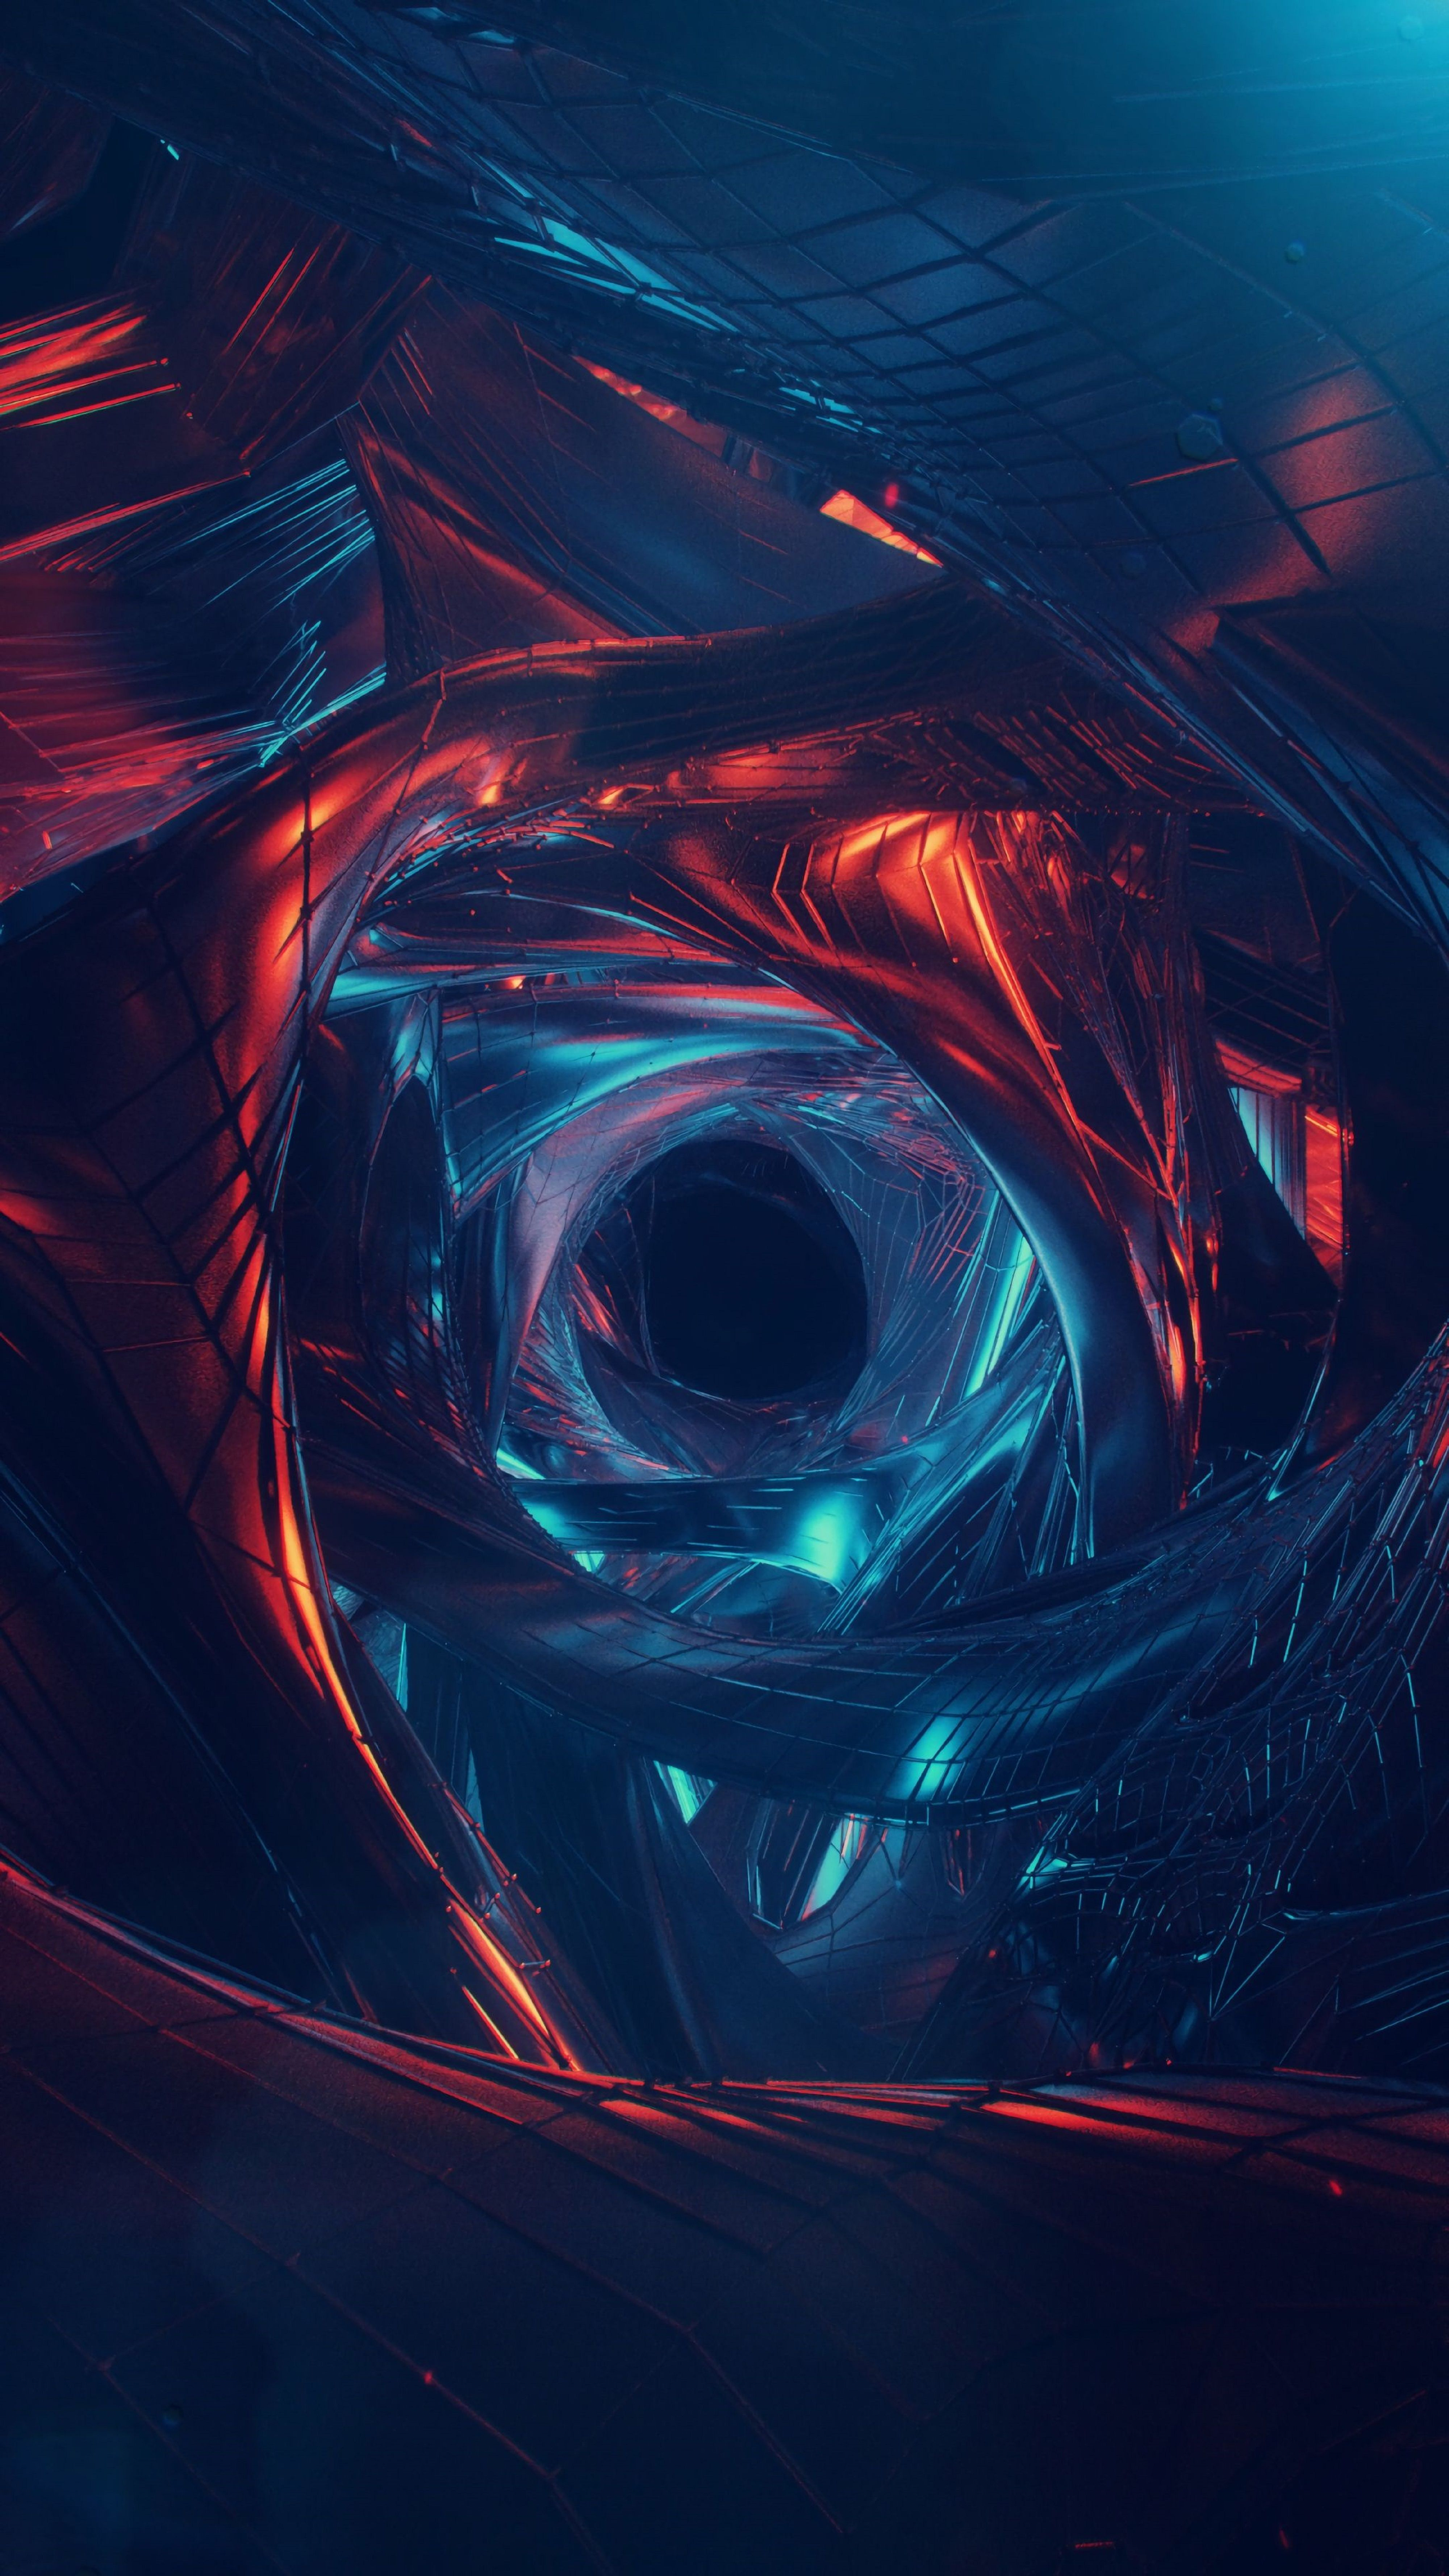 Abstract Design 3 Android wallpaper abstract, Abstract